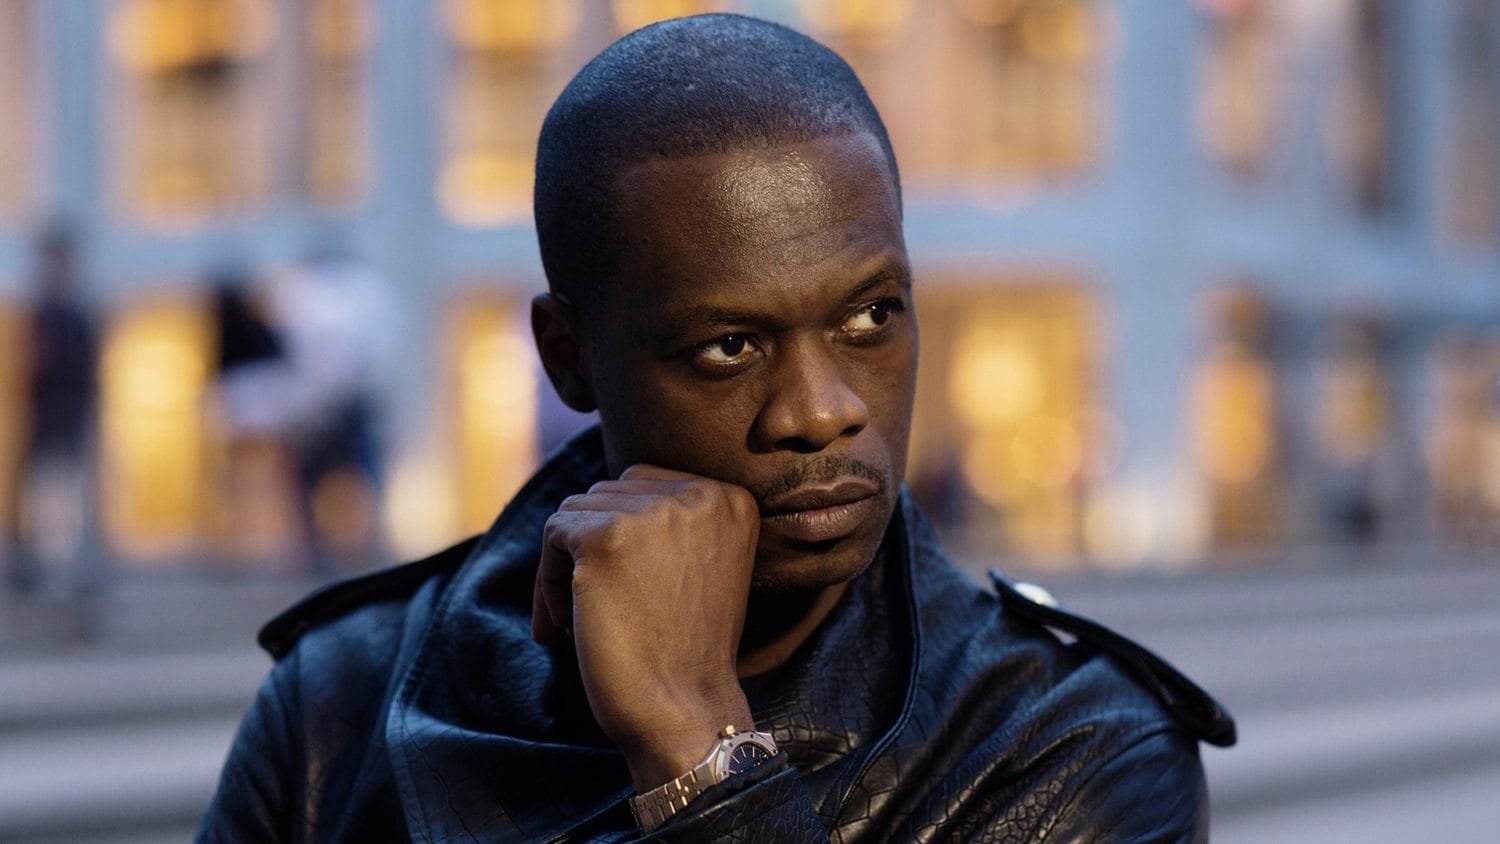 Pras, formally of Fugees fame, charged in Obama campaign finance scheme